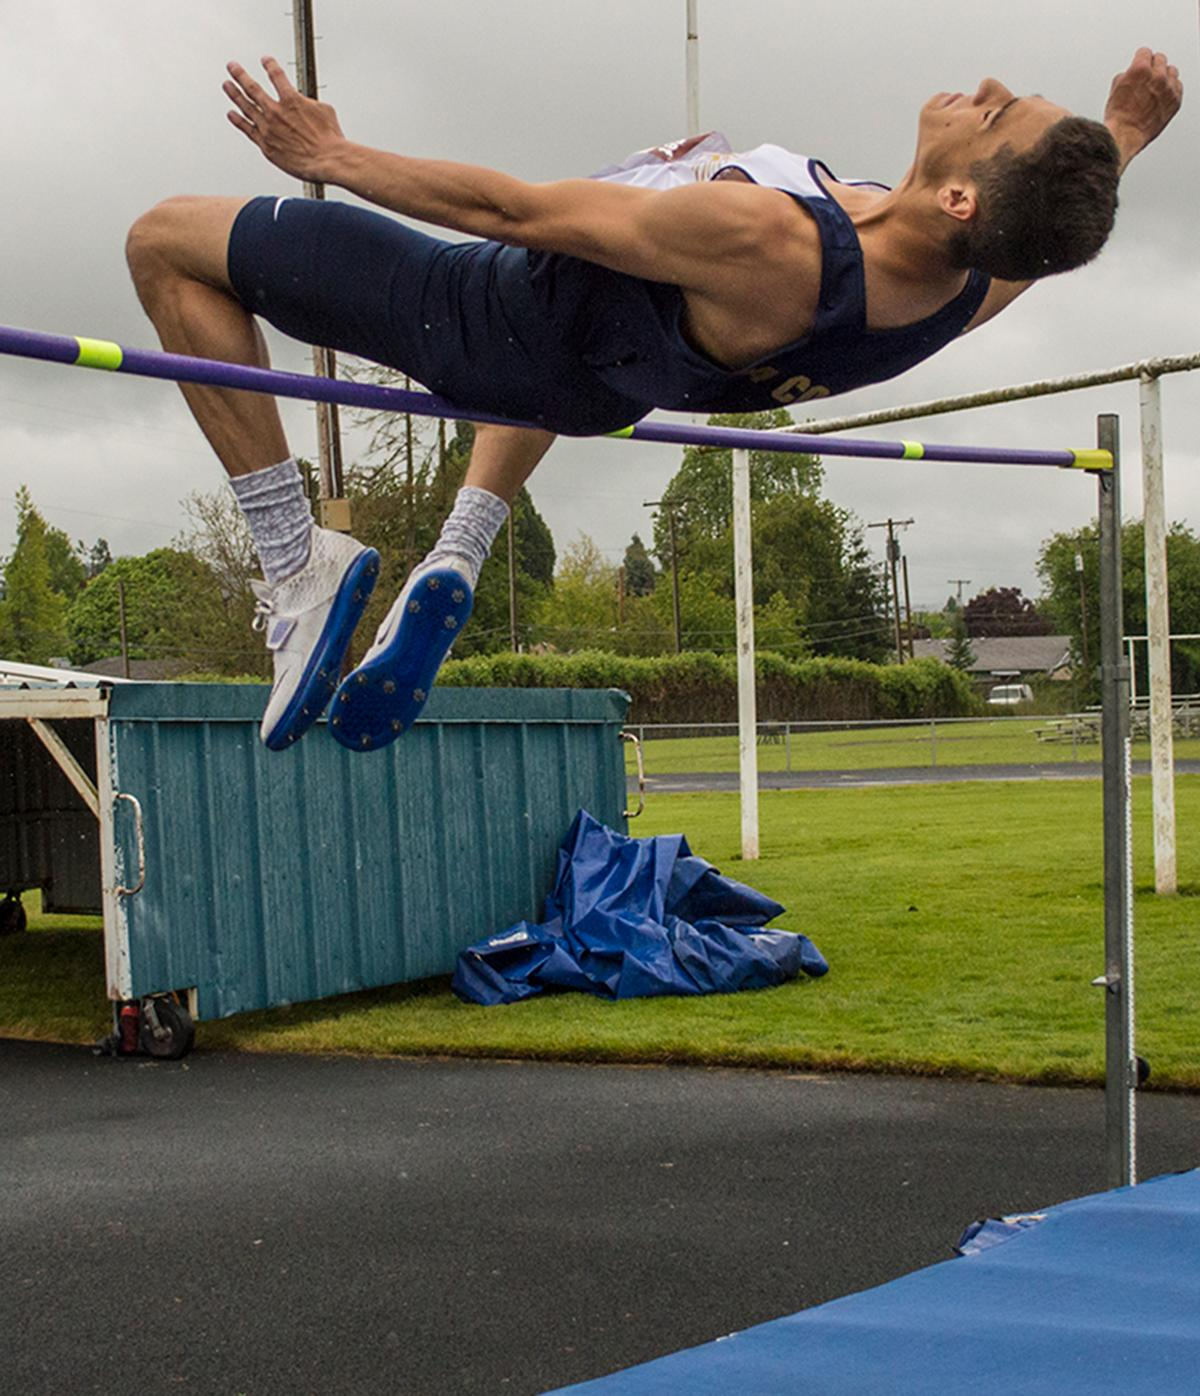 "Pierce Lacoste of Marist High School clears the bar at a height of 6'3"", winning the Men's High Jump event at the 5A-3 Midwestern League District Championship. Photo by Emily Gonzalez, Oregon News Lab."